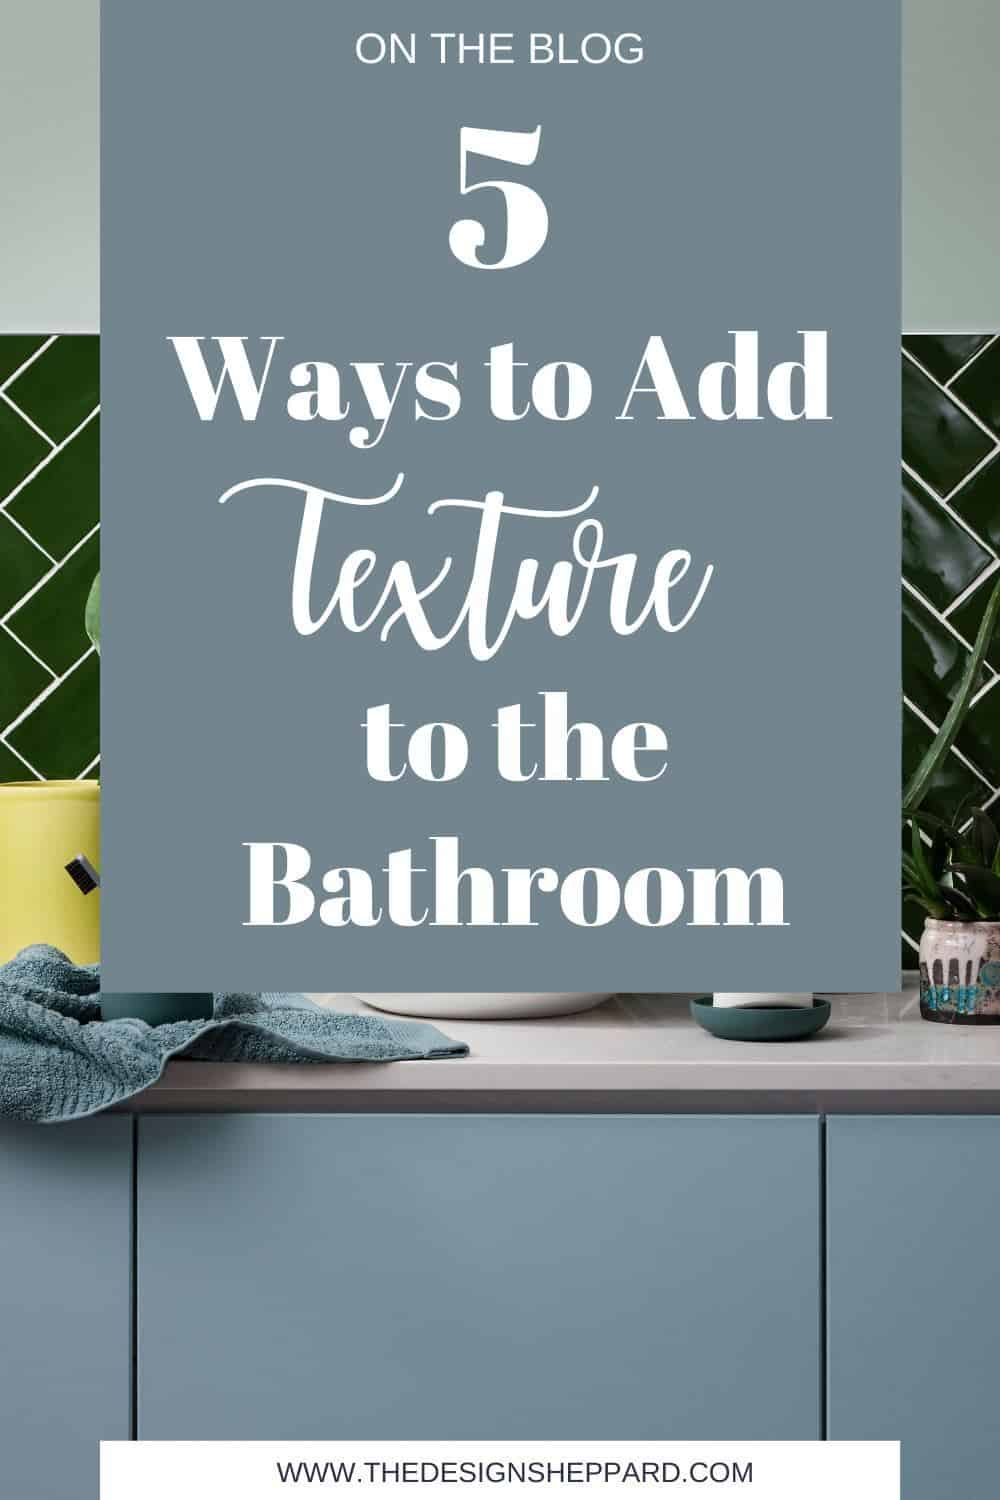 5 ways to add texture in the bathroom